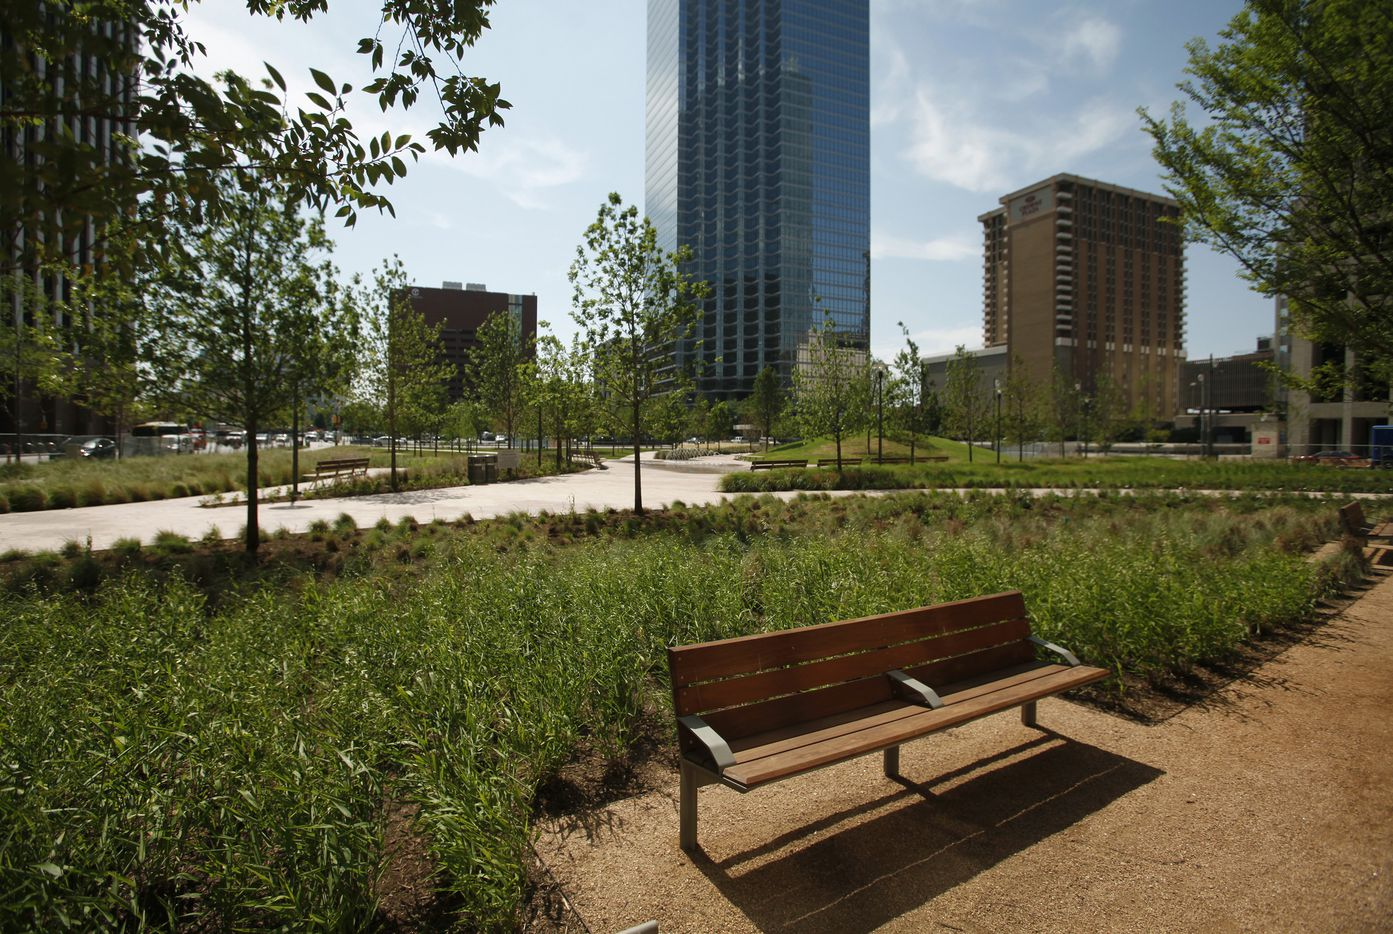 The Belo Garden park downtown Dallas offers green space in the city. Photographed on Thursday, May 3, 2012.